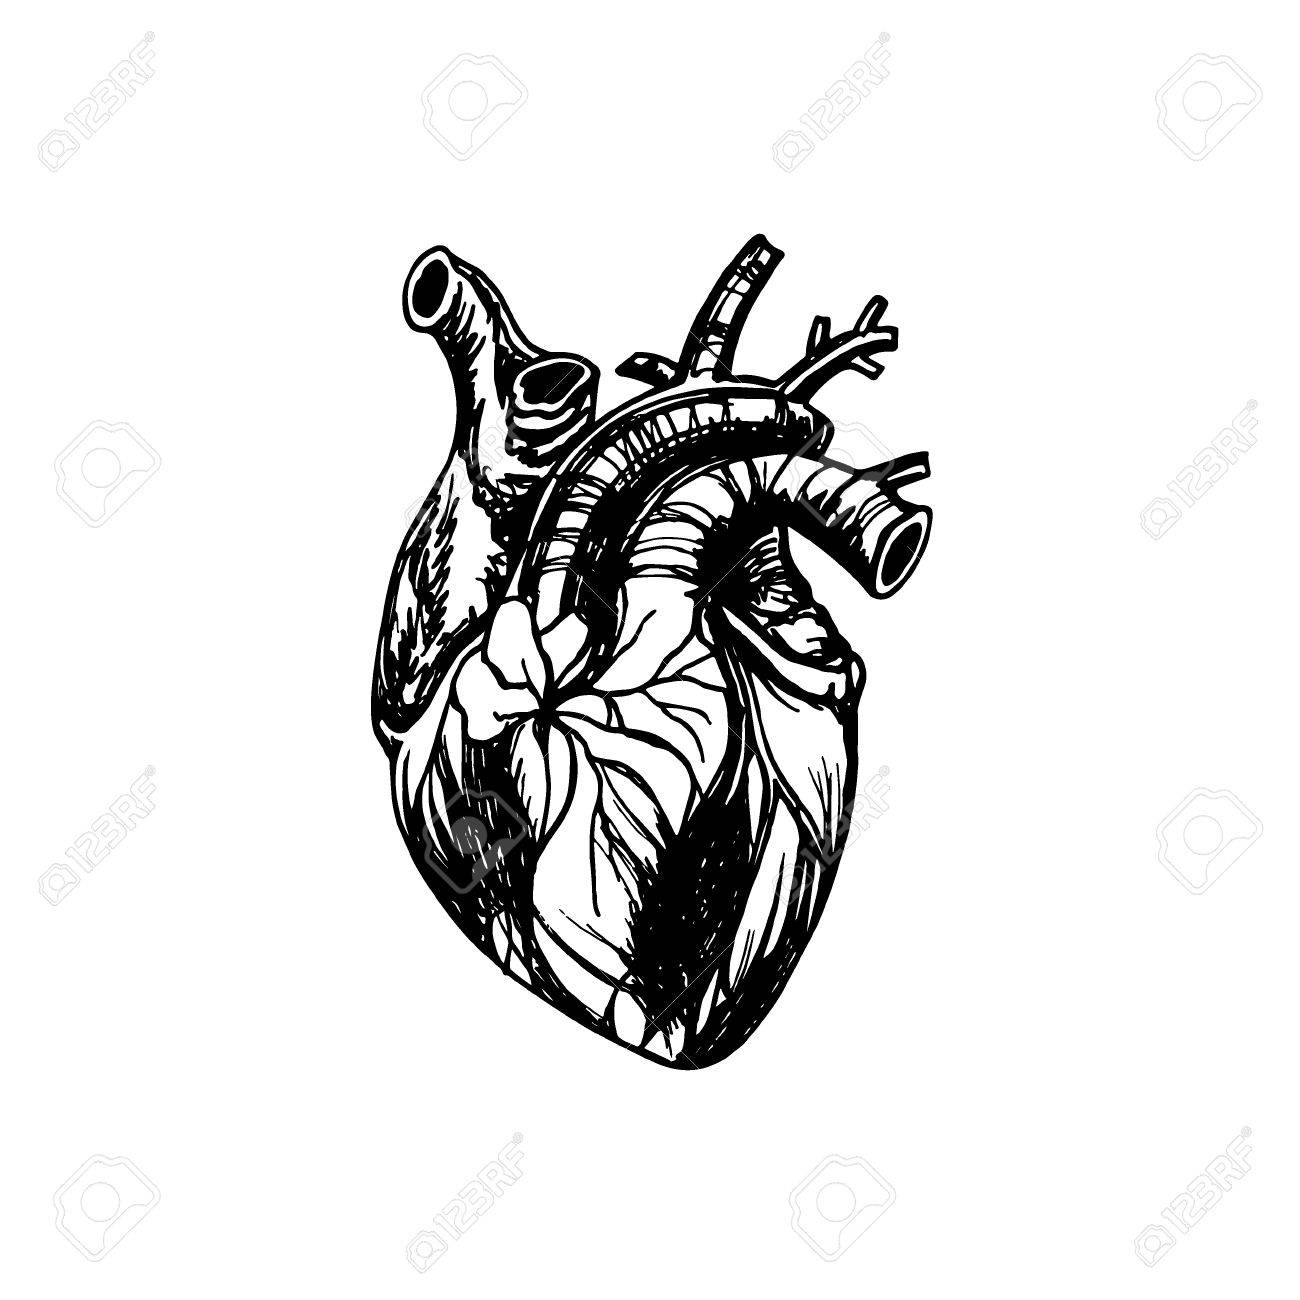 Human Heart Anatomy Drawing At Getdrawings Free For Personal